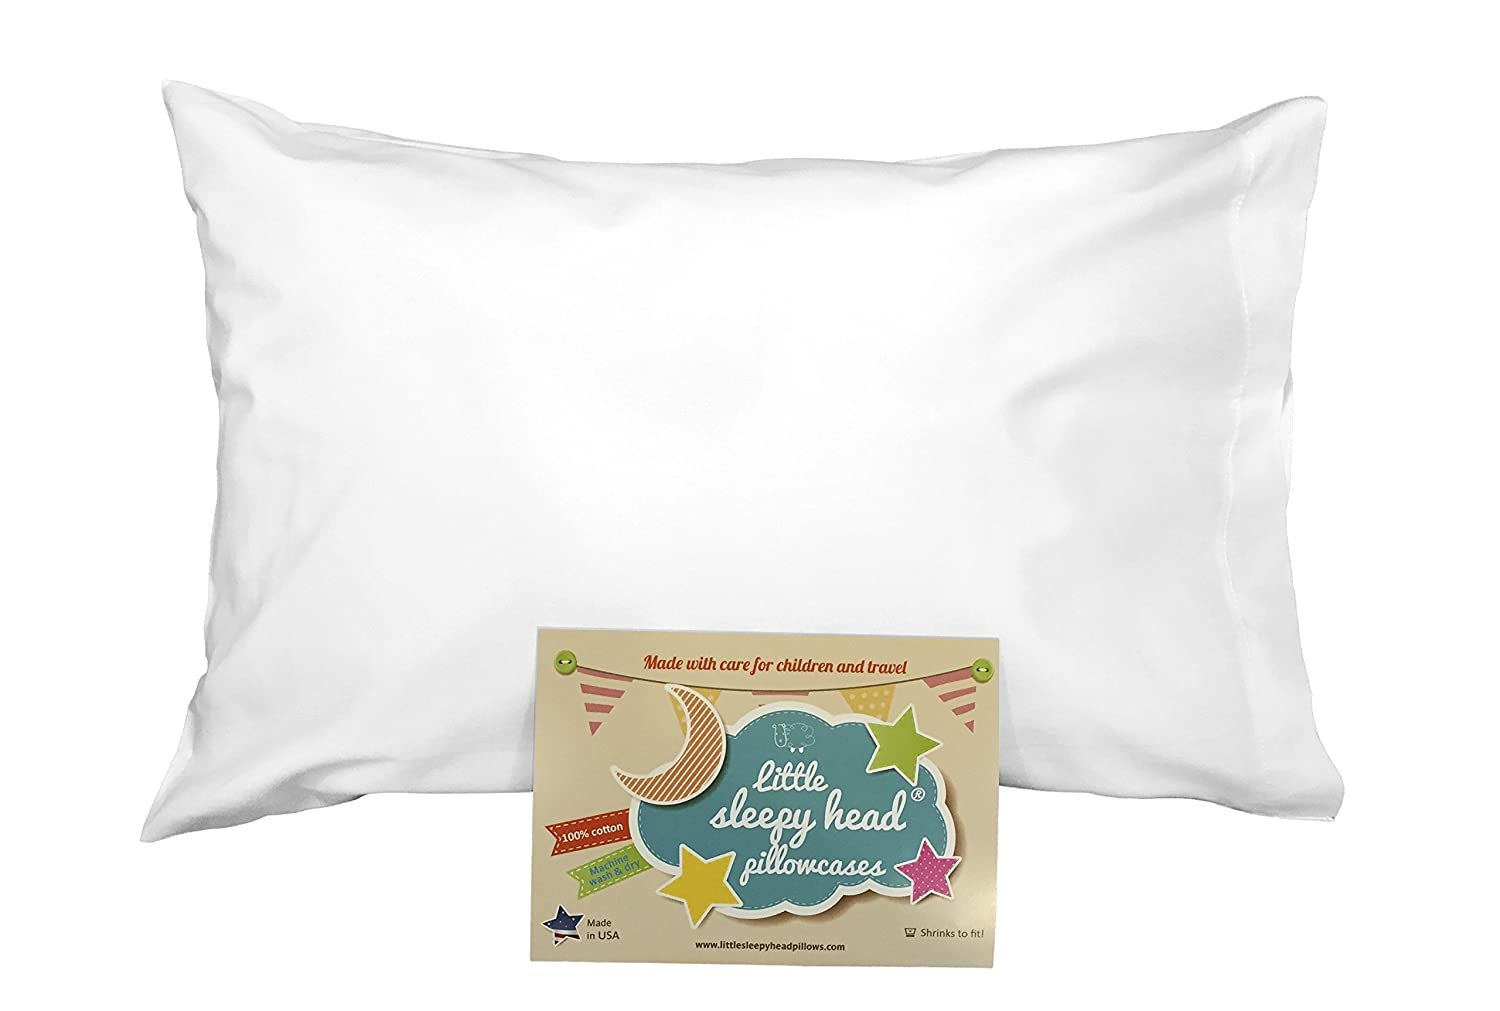 Made for Little Sleepy Head Toddler Pillow 13 X 18-100/% Cotton Naturally Hypoallergenic White Envelope Toddler Pillowcase Made in USA!